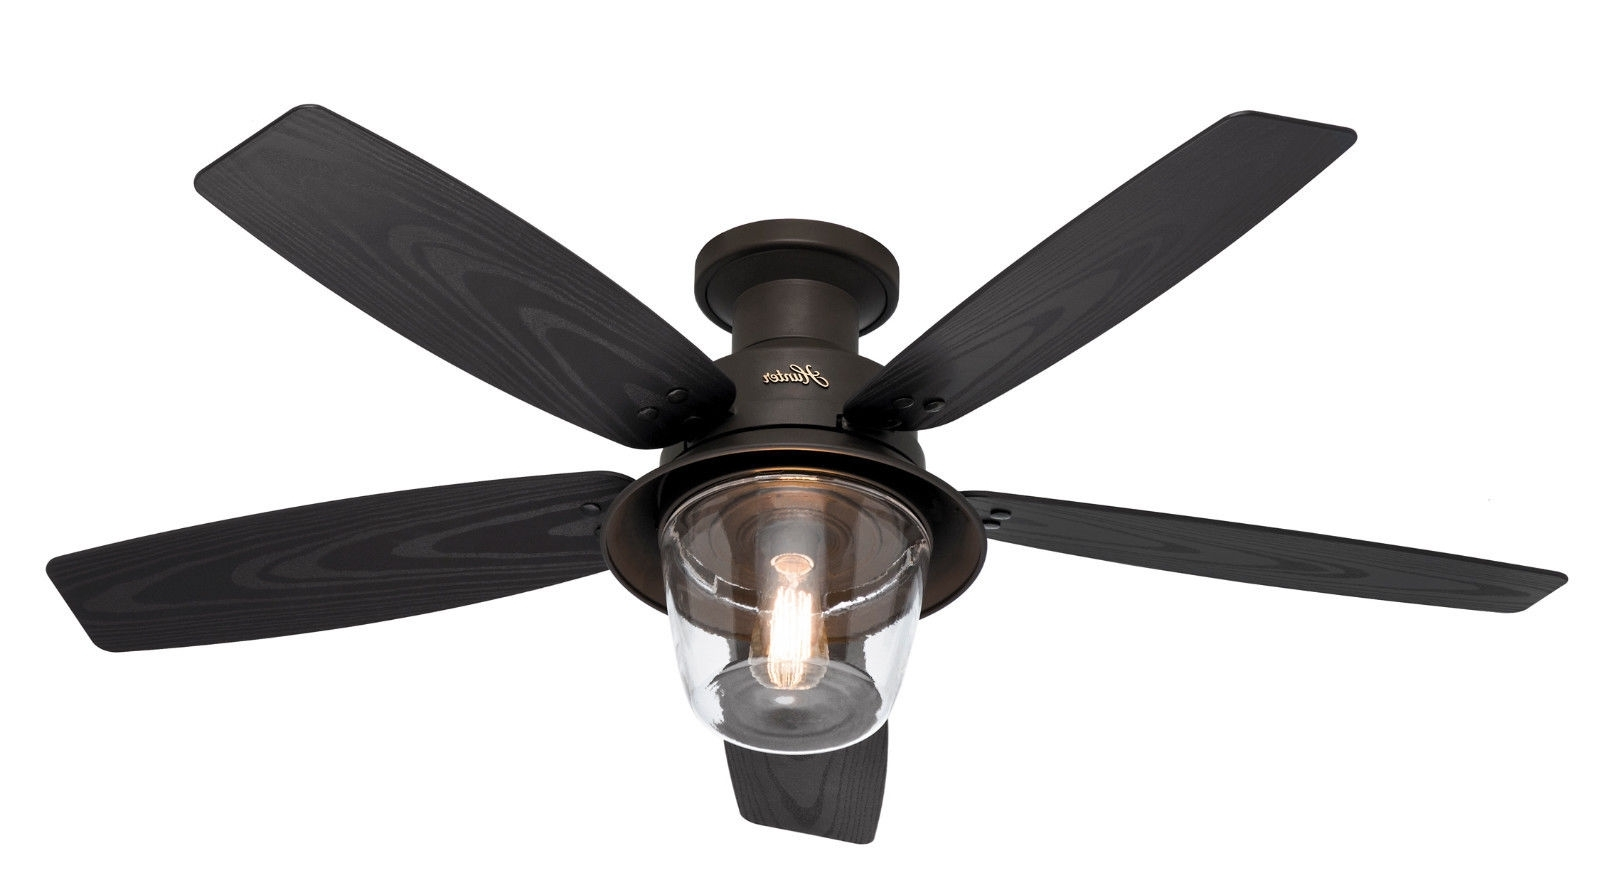 Fashionable Hunter Outdoor Ceiling Fans With Lights And Remote Regarding Ceiling: Astounding Small Outdoor Ceiling Fan Hunter Outdoor Ceiling (View 5 of 20)